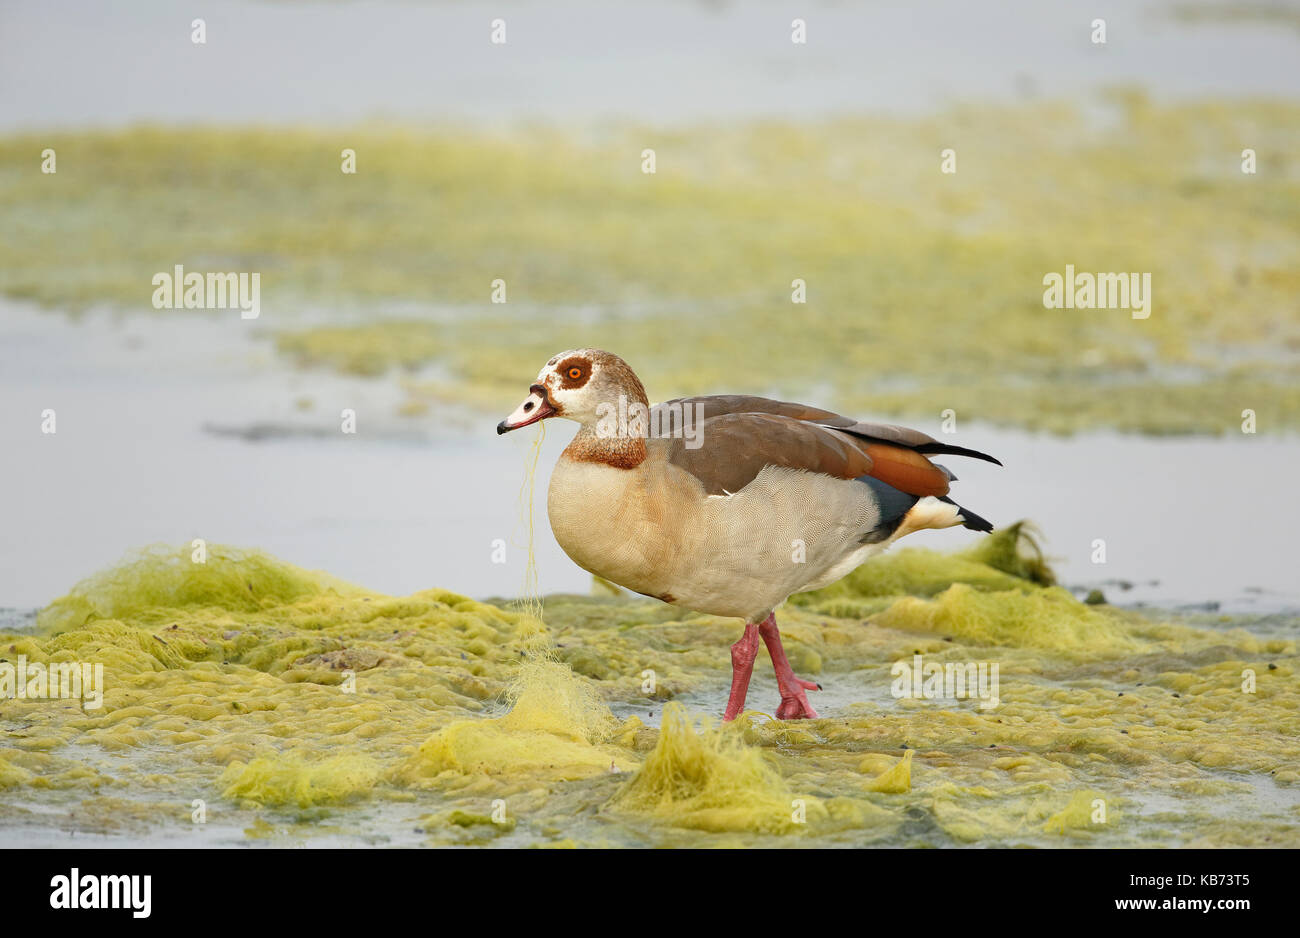 Egyptian Goose (Alopochen aegyptiacus) feeding on aquatic vegetation, South Africa, Mpumalanga, Kruger National - Stock Image